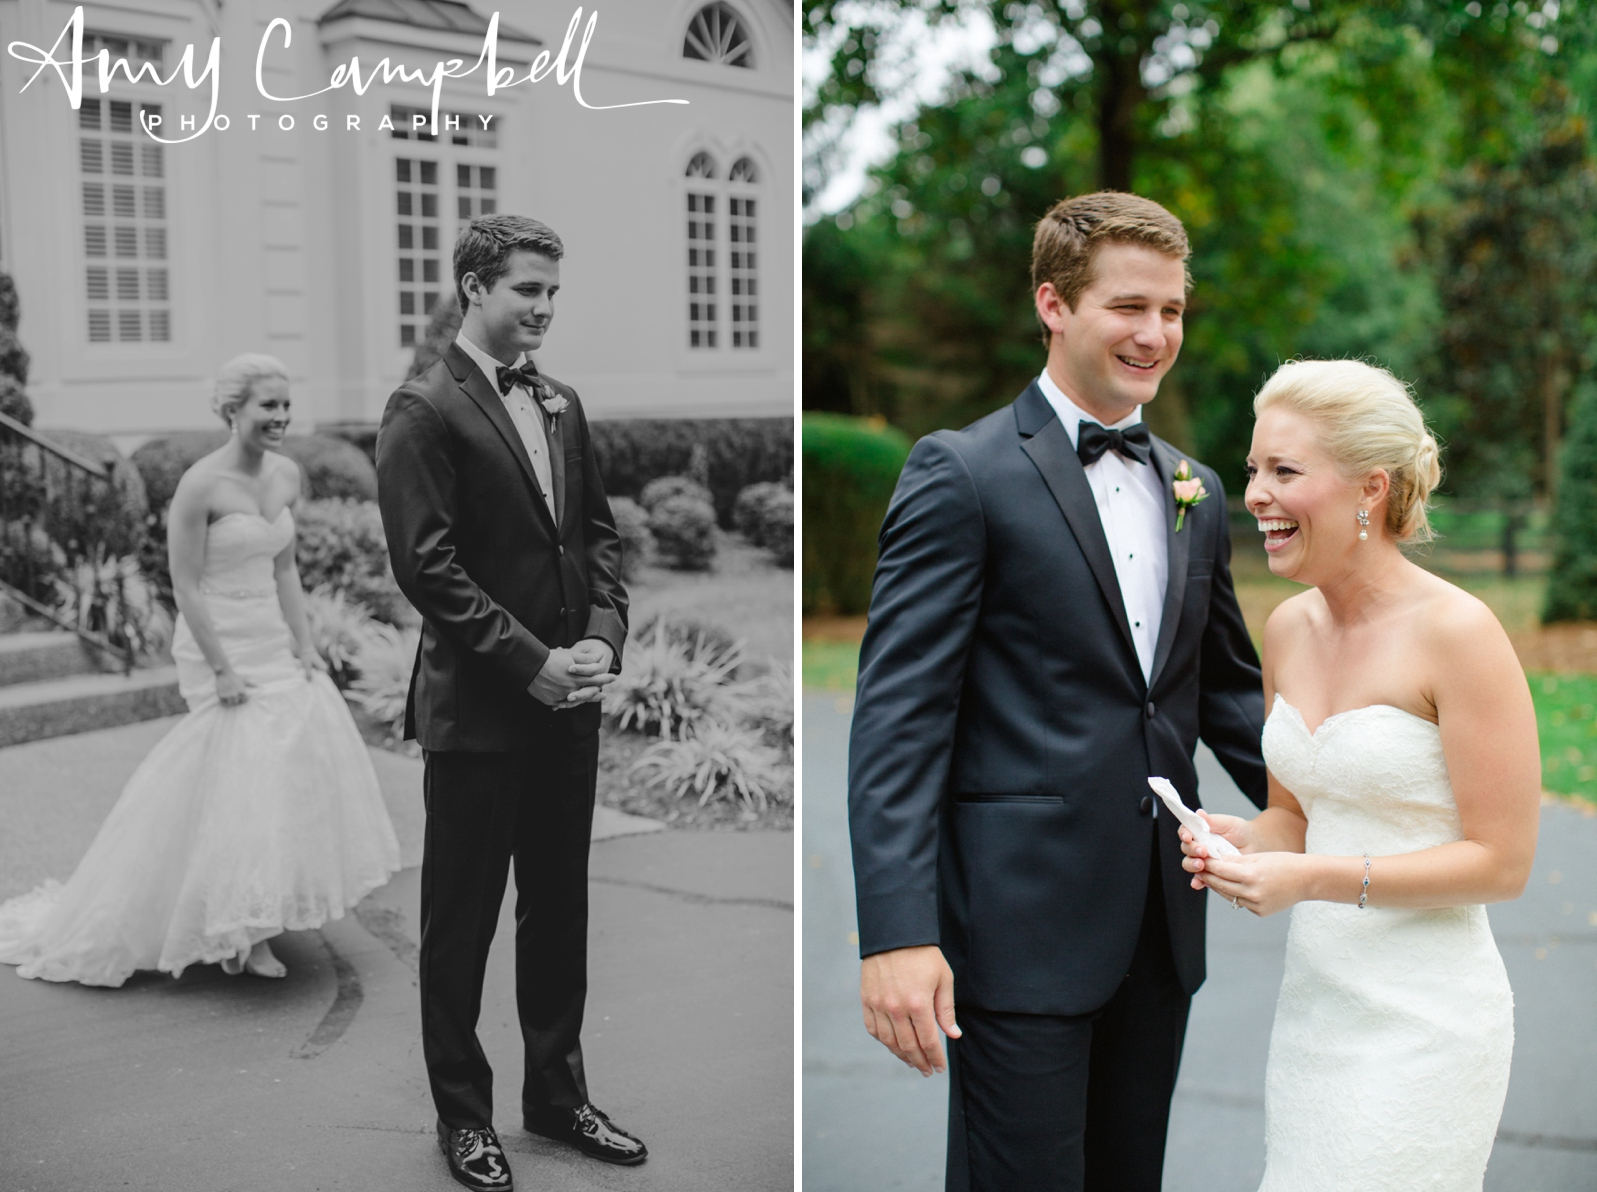 chelseamike_wedss_pics_amycampbellphotography_036.jpg